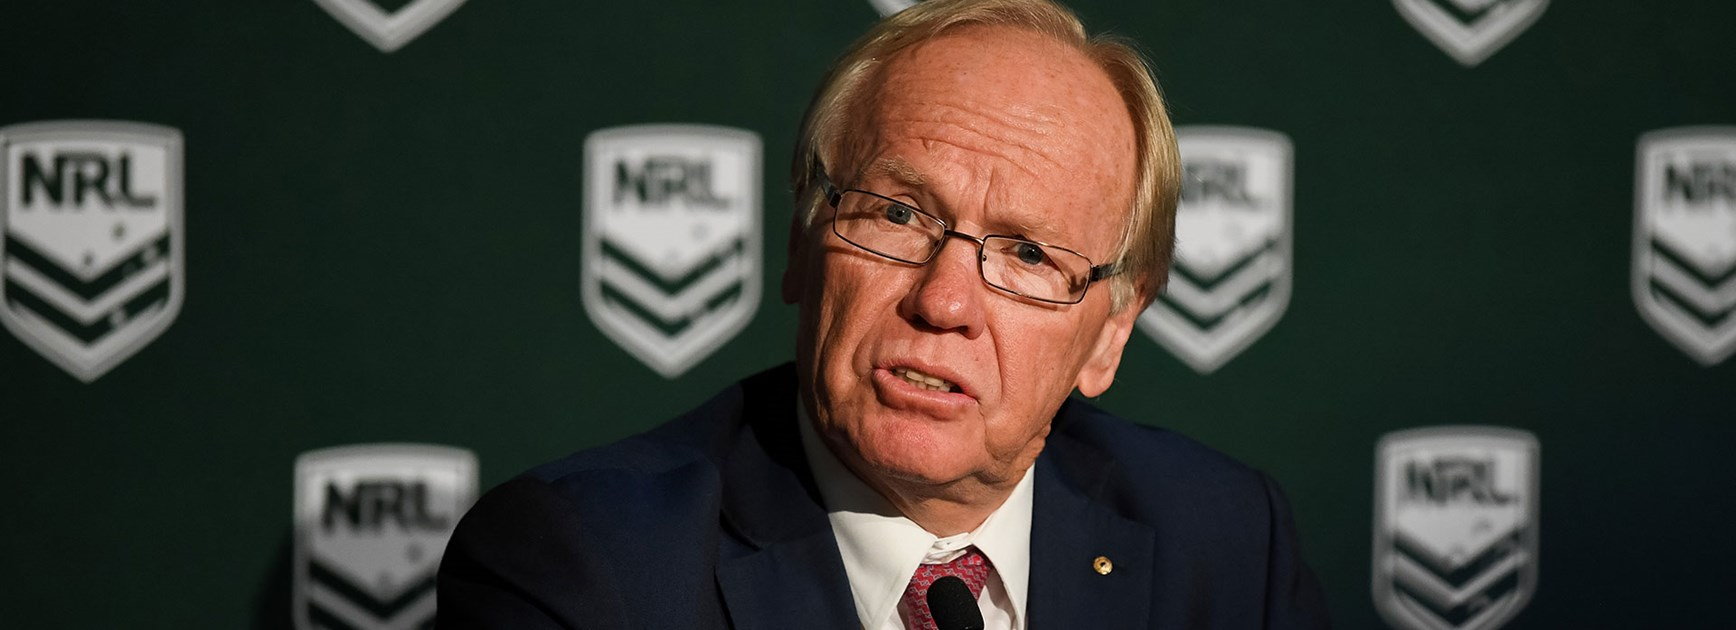 Australian Rugby League Commission - meeting update